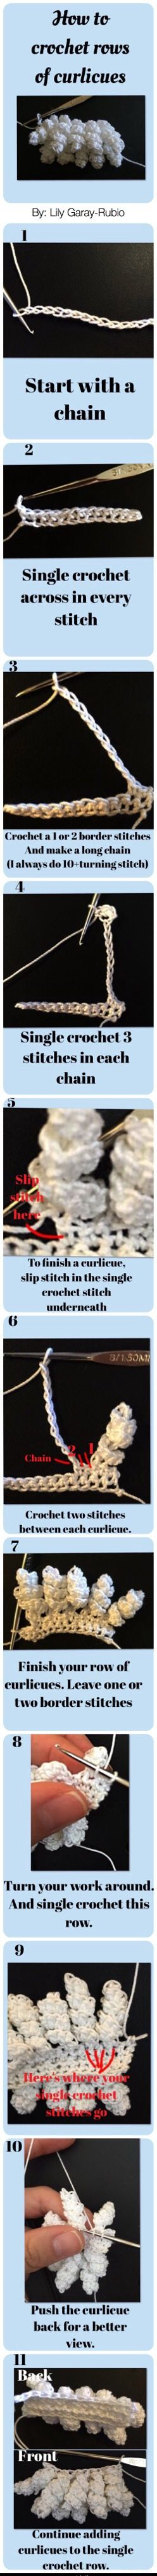 Step-by-step picture tutorial | how to chrochet rows of curlicues| If you're using the Pinterest app do not click on my pins your app will malfunction-if you're using a browser, click on my pin to be redirected to my board for other fun tutorials.